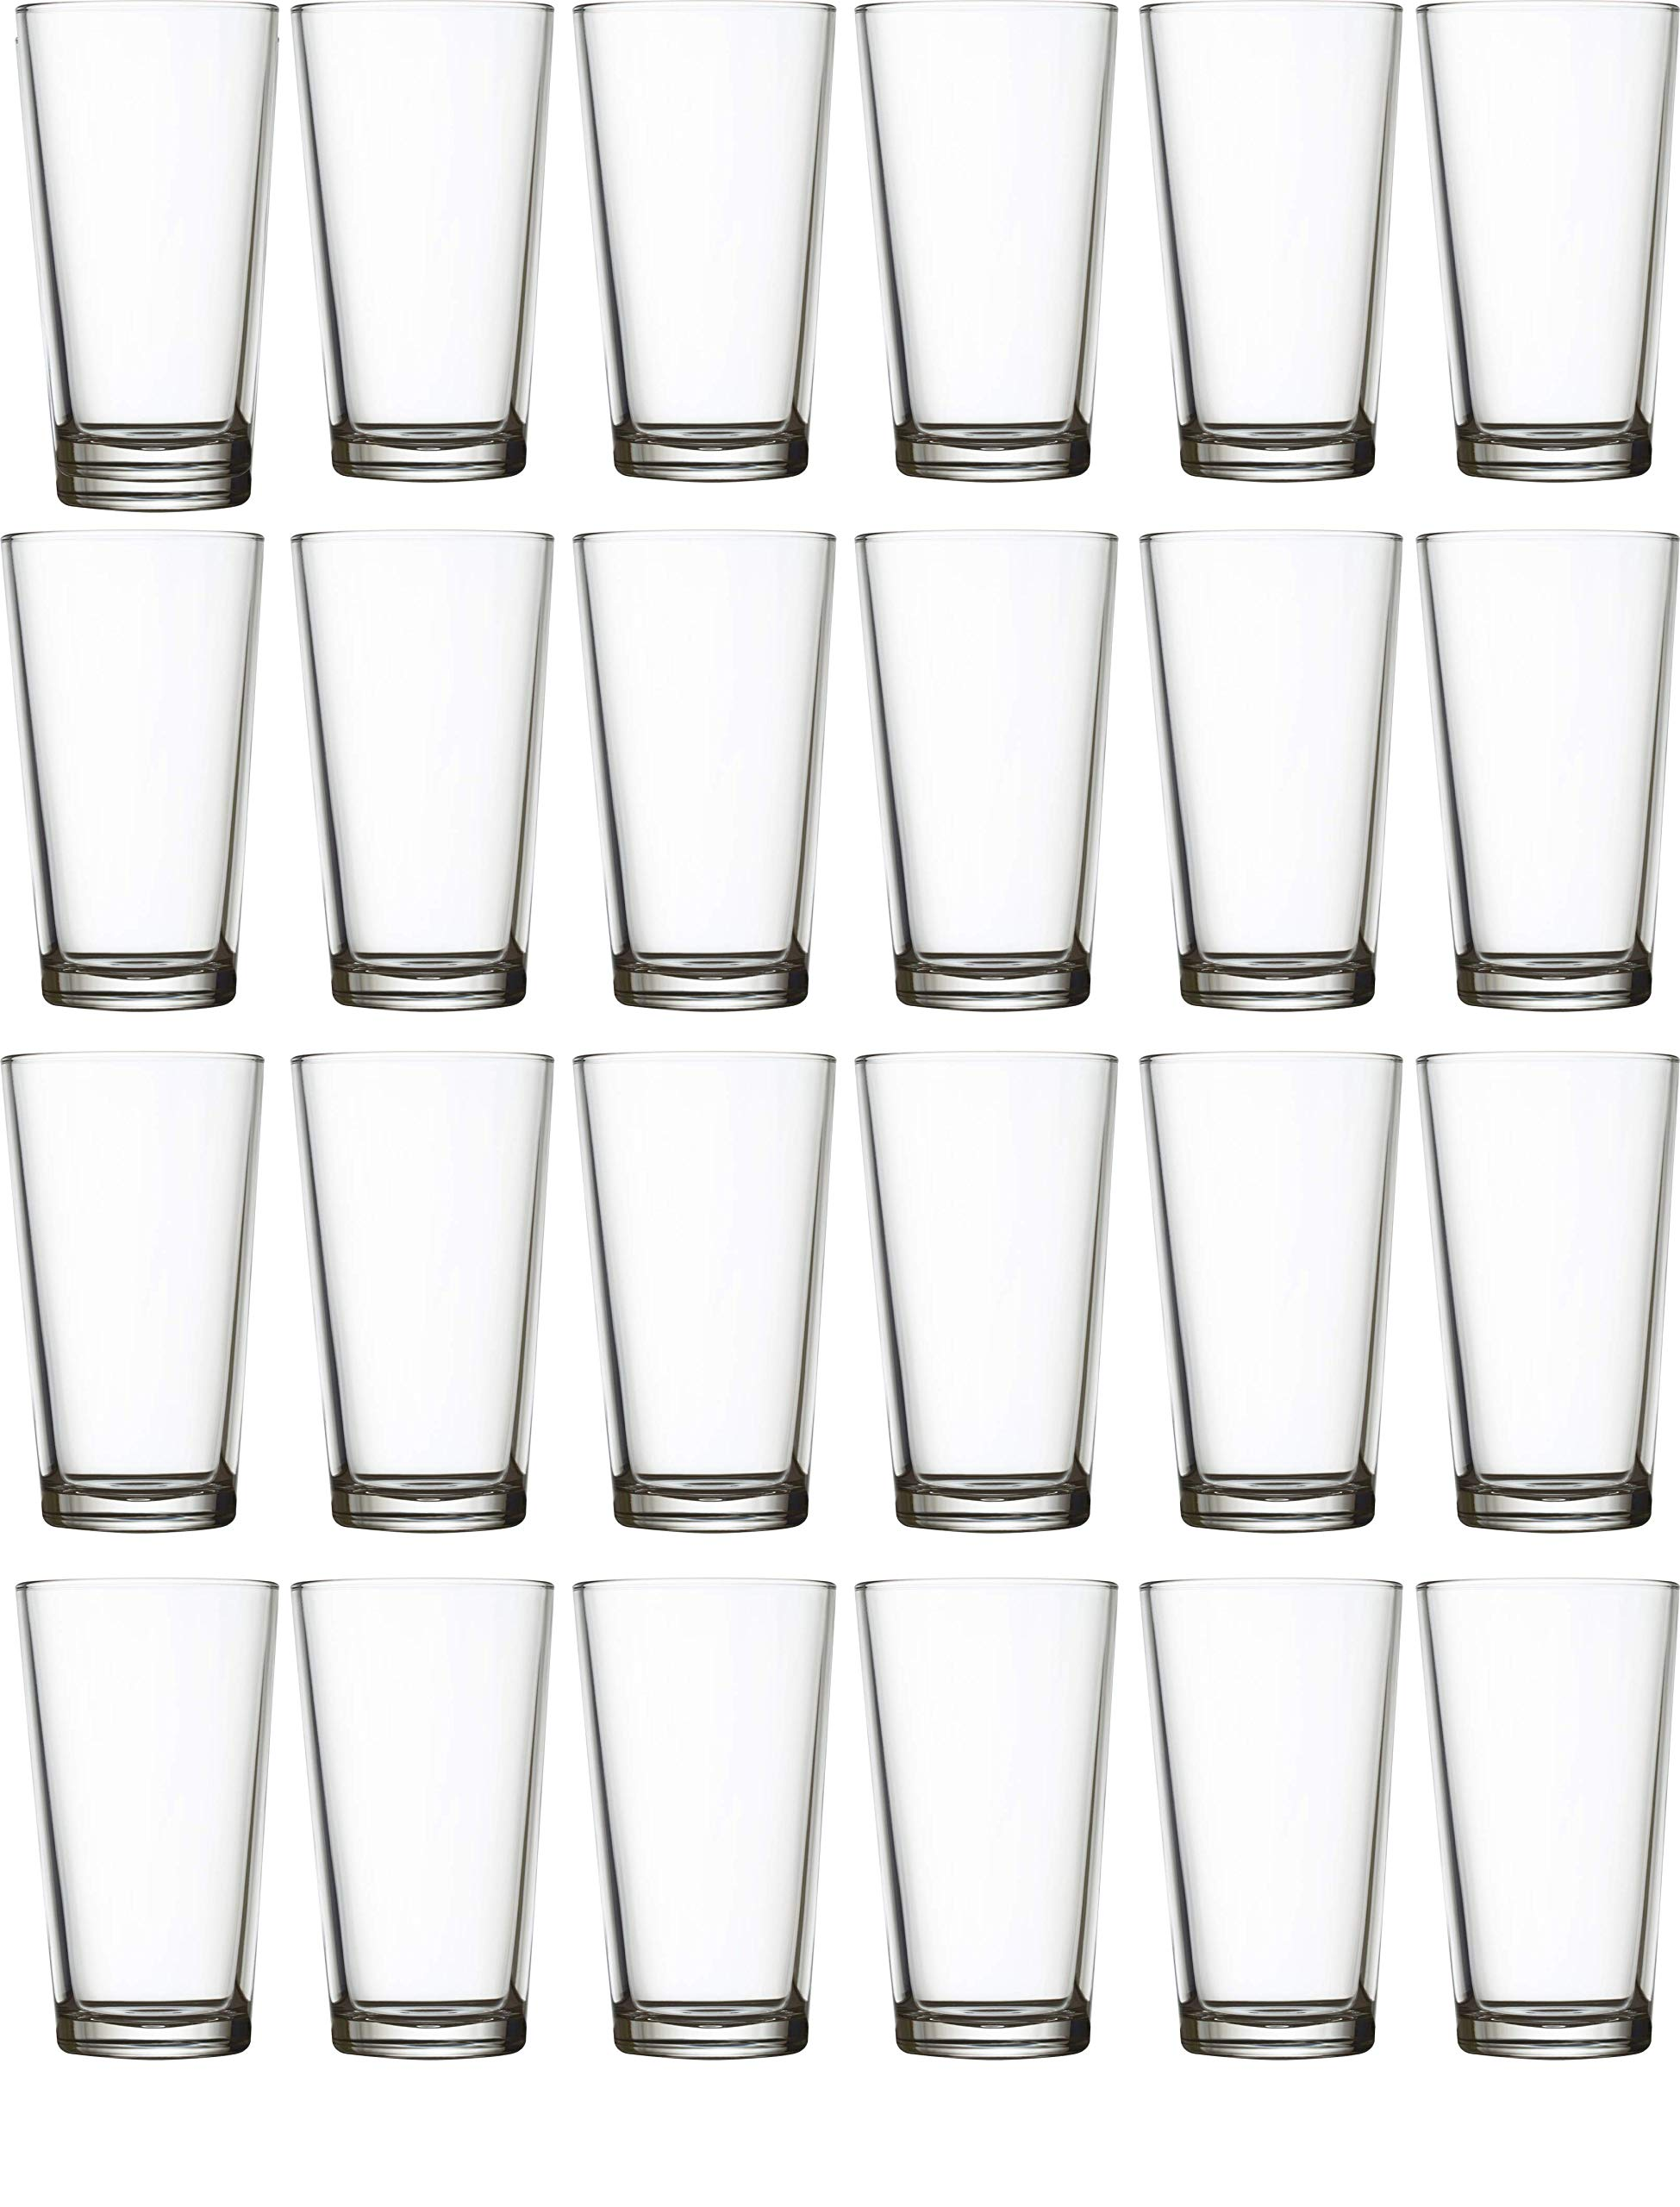 Circleware 04128/AM Huge 24-Piece Set of Highball Tumbler Drinking Glasses 16 oz. Home & Kitchen Party Heavy Base Clear Glassware Cups for Water, Beer, Juice, Ice Tea, Bar Beverages Simple Home 24pc by Circleware (Image #1)